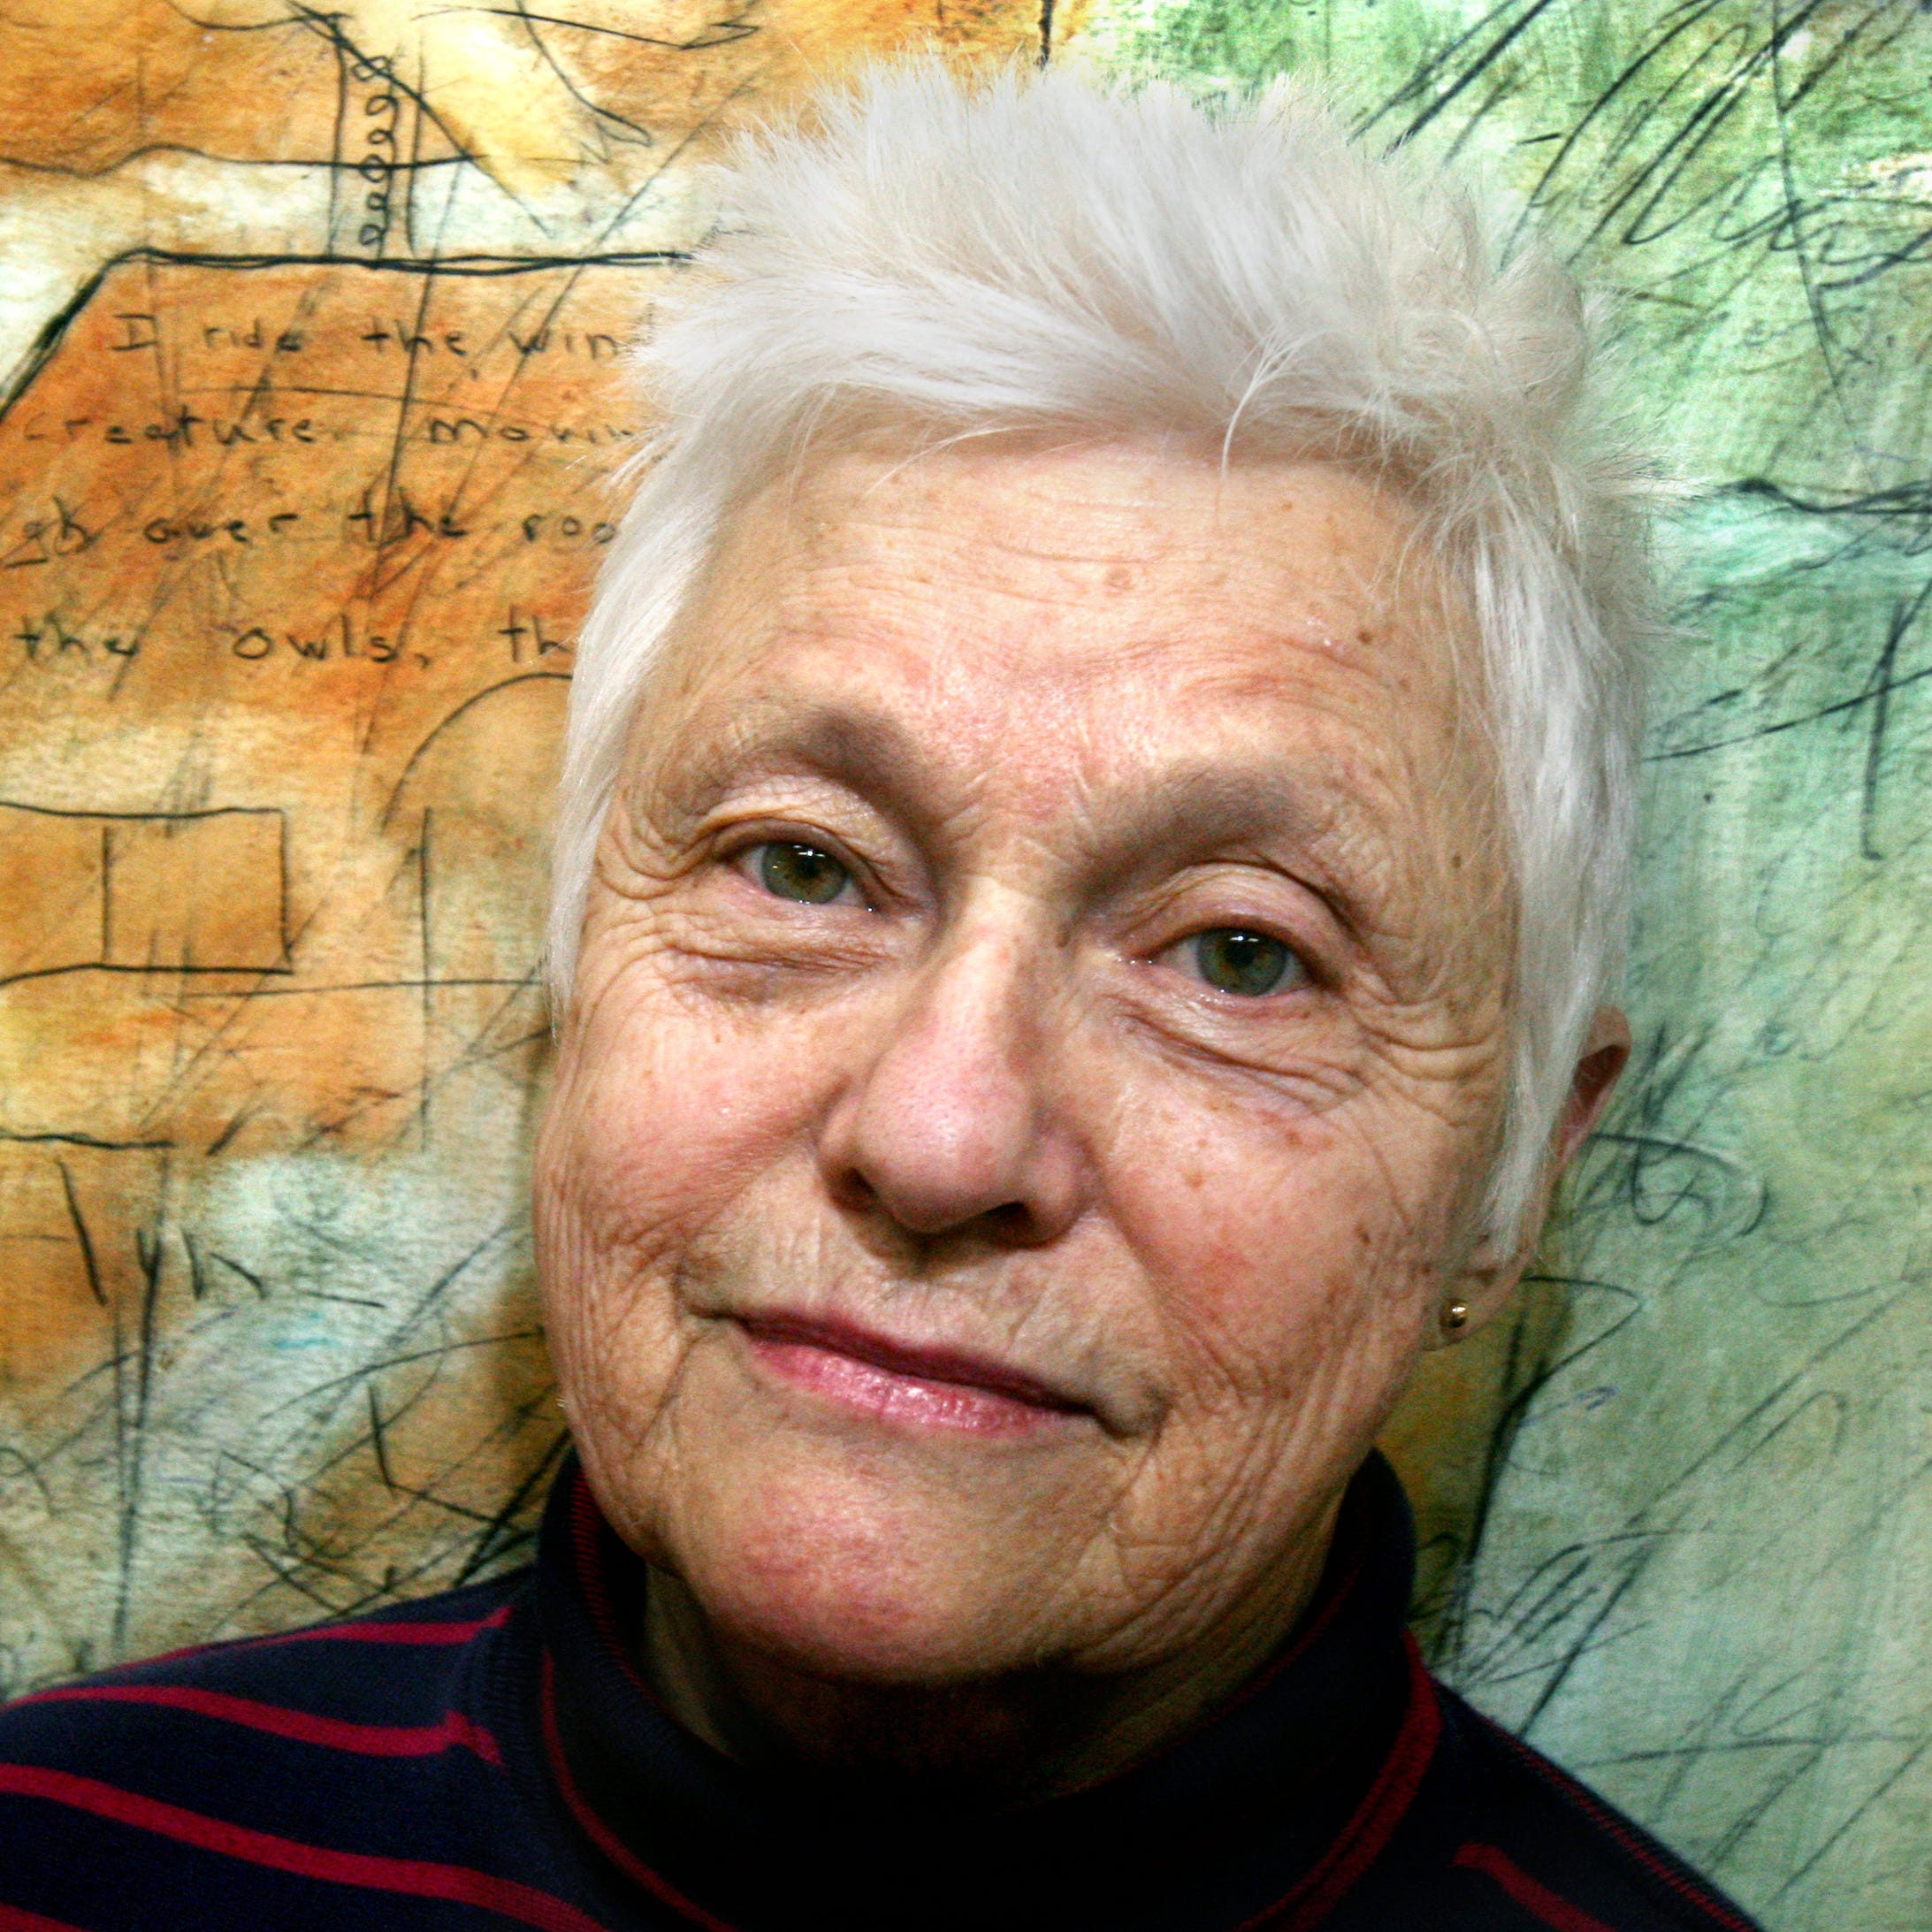 Painter Lois Main Templeton, known for pushing Indianapolis' art scene forward, has died